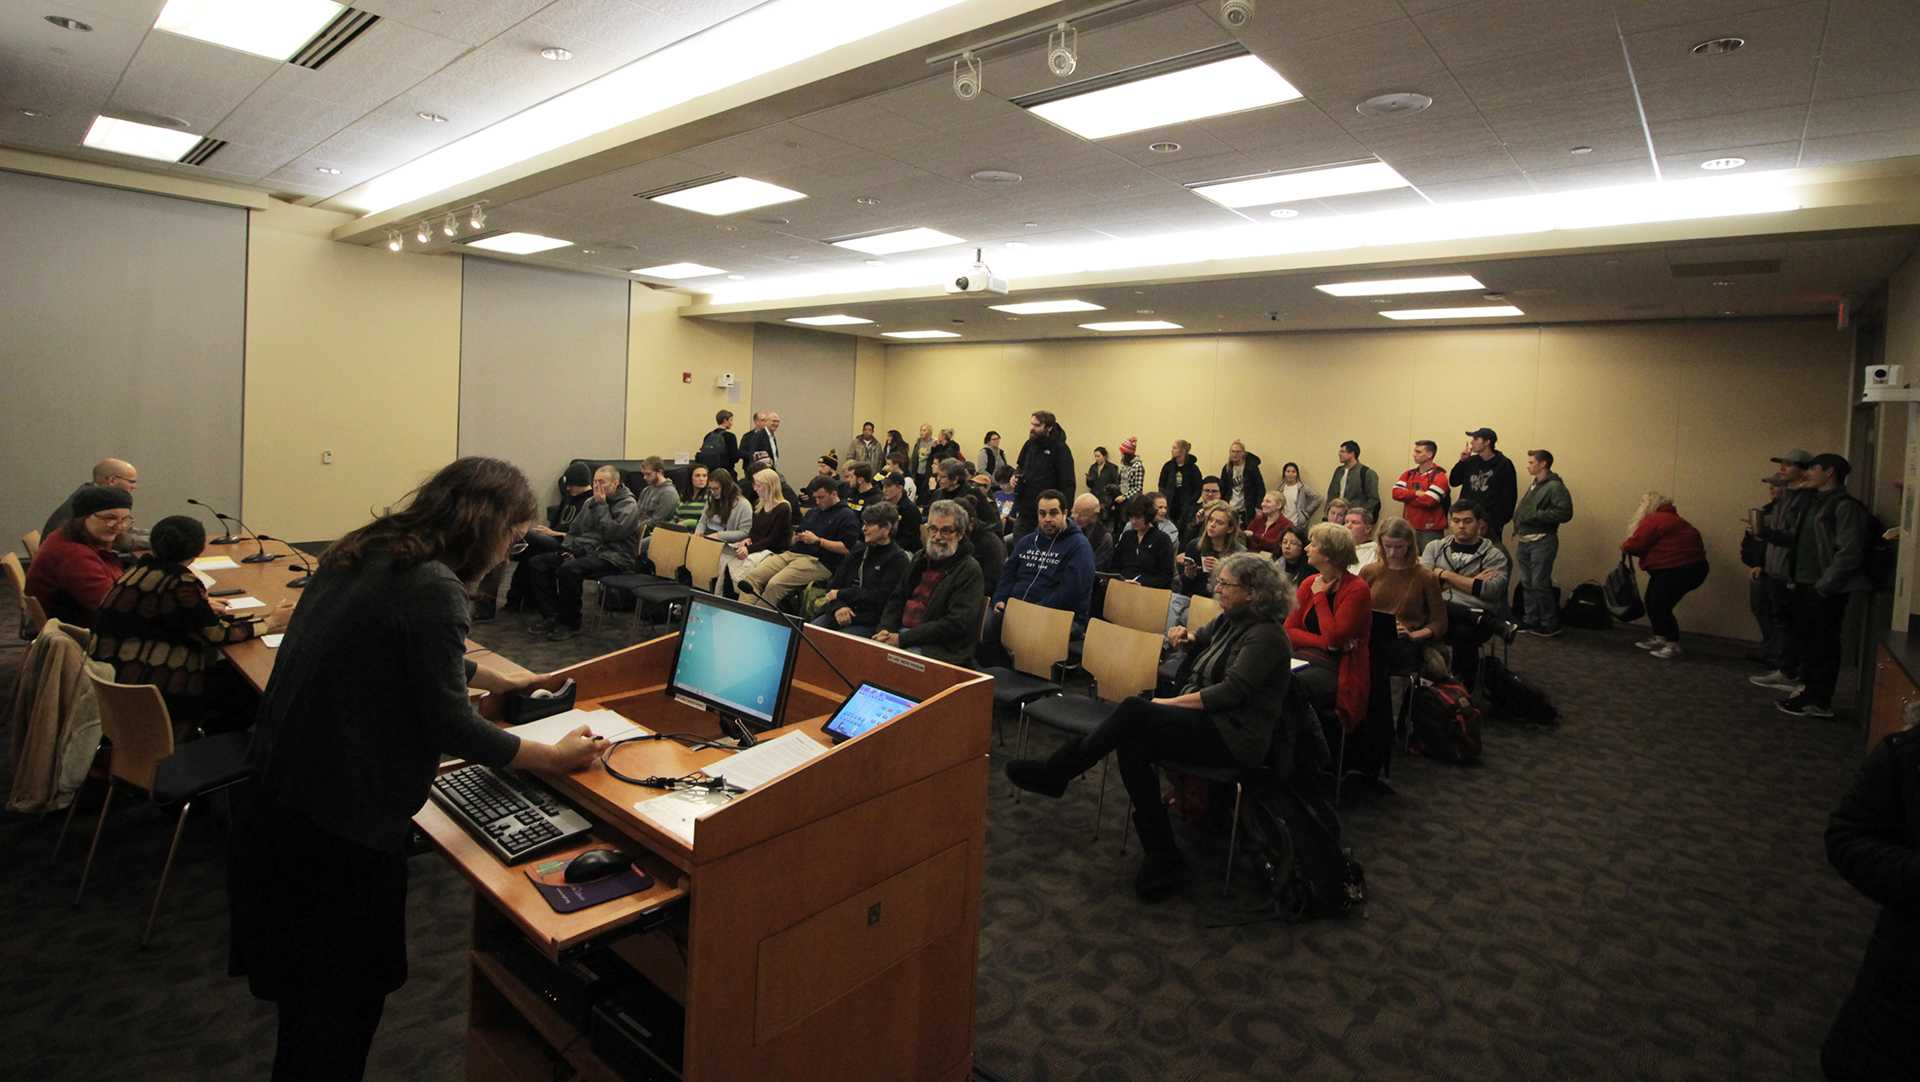 Yasemin Mohammad prepares to speak to a crowd during a Syrian refugee panel discussion at the Iowa City Public Library on Monday, Nov. 6, 2017. The panel discussed refugee immigration and how it is affecting various countries. (Andrew Baur Schoer/The Daily Iowan)